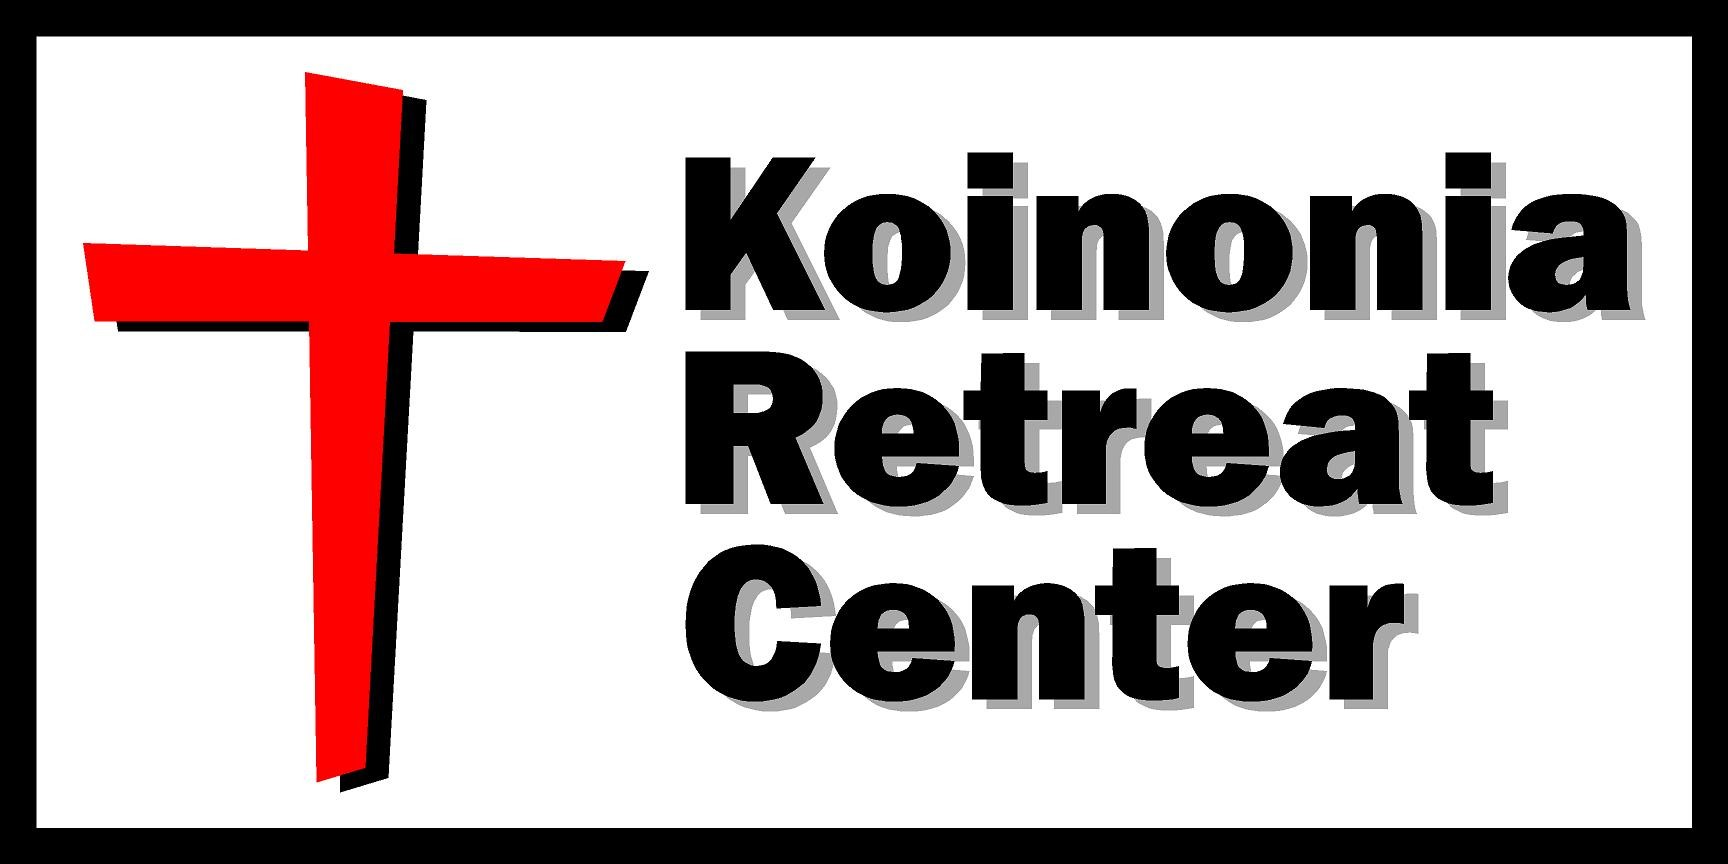 Koinonia Retreat Center